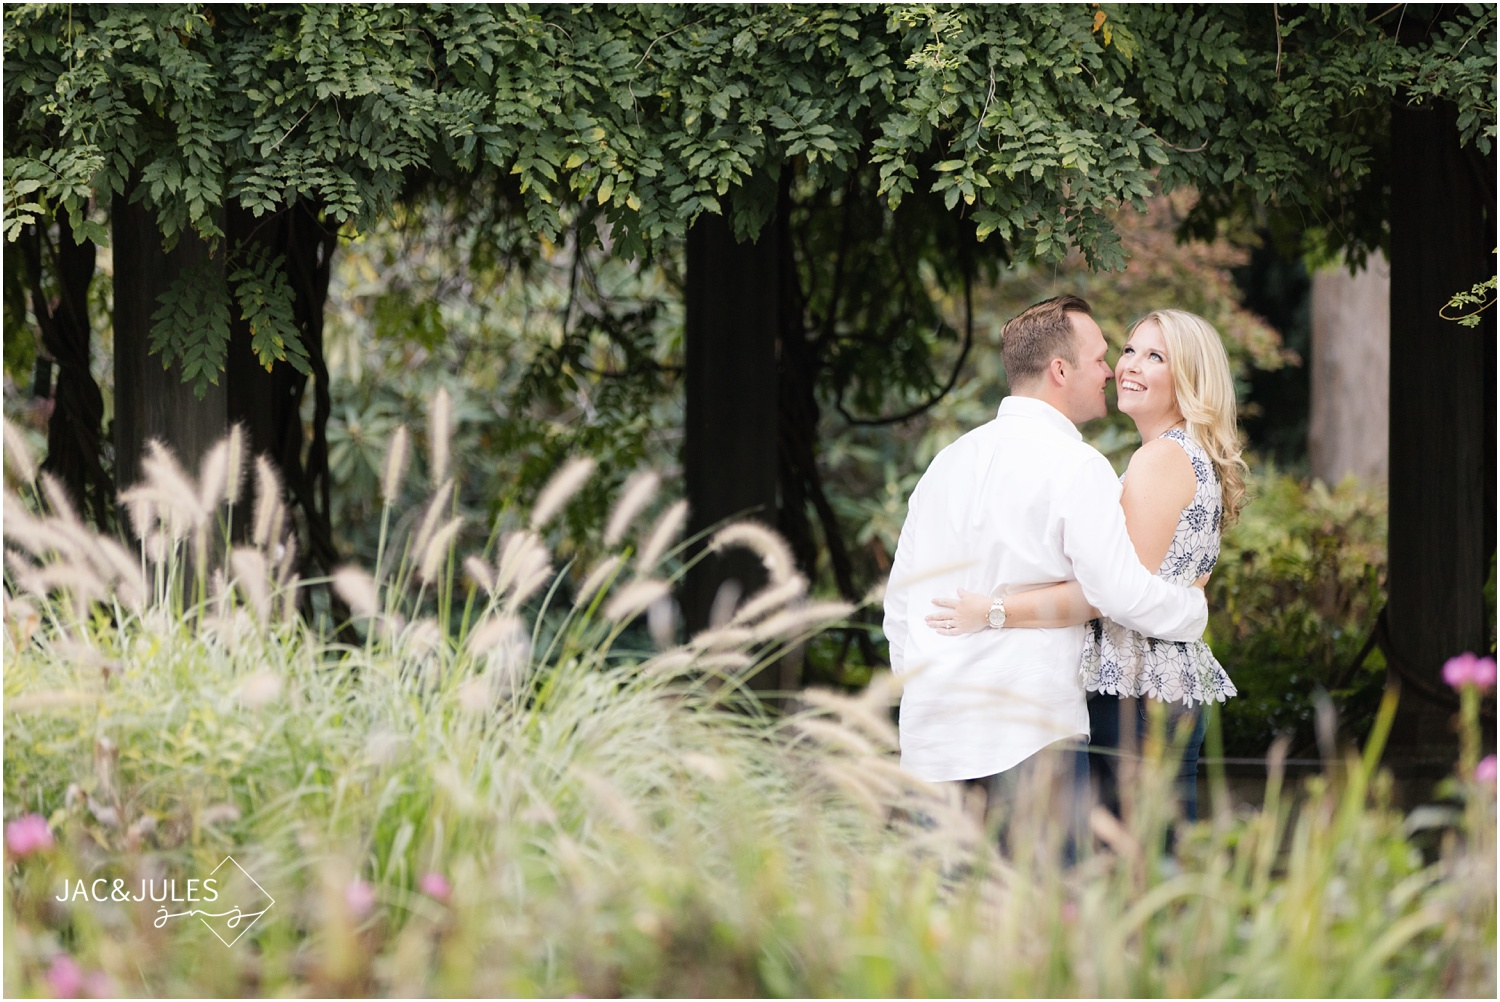 Awesome Engagement photos at Van Vleck House and Gardens in Montclair, NJ.